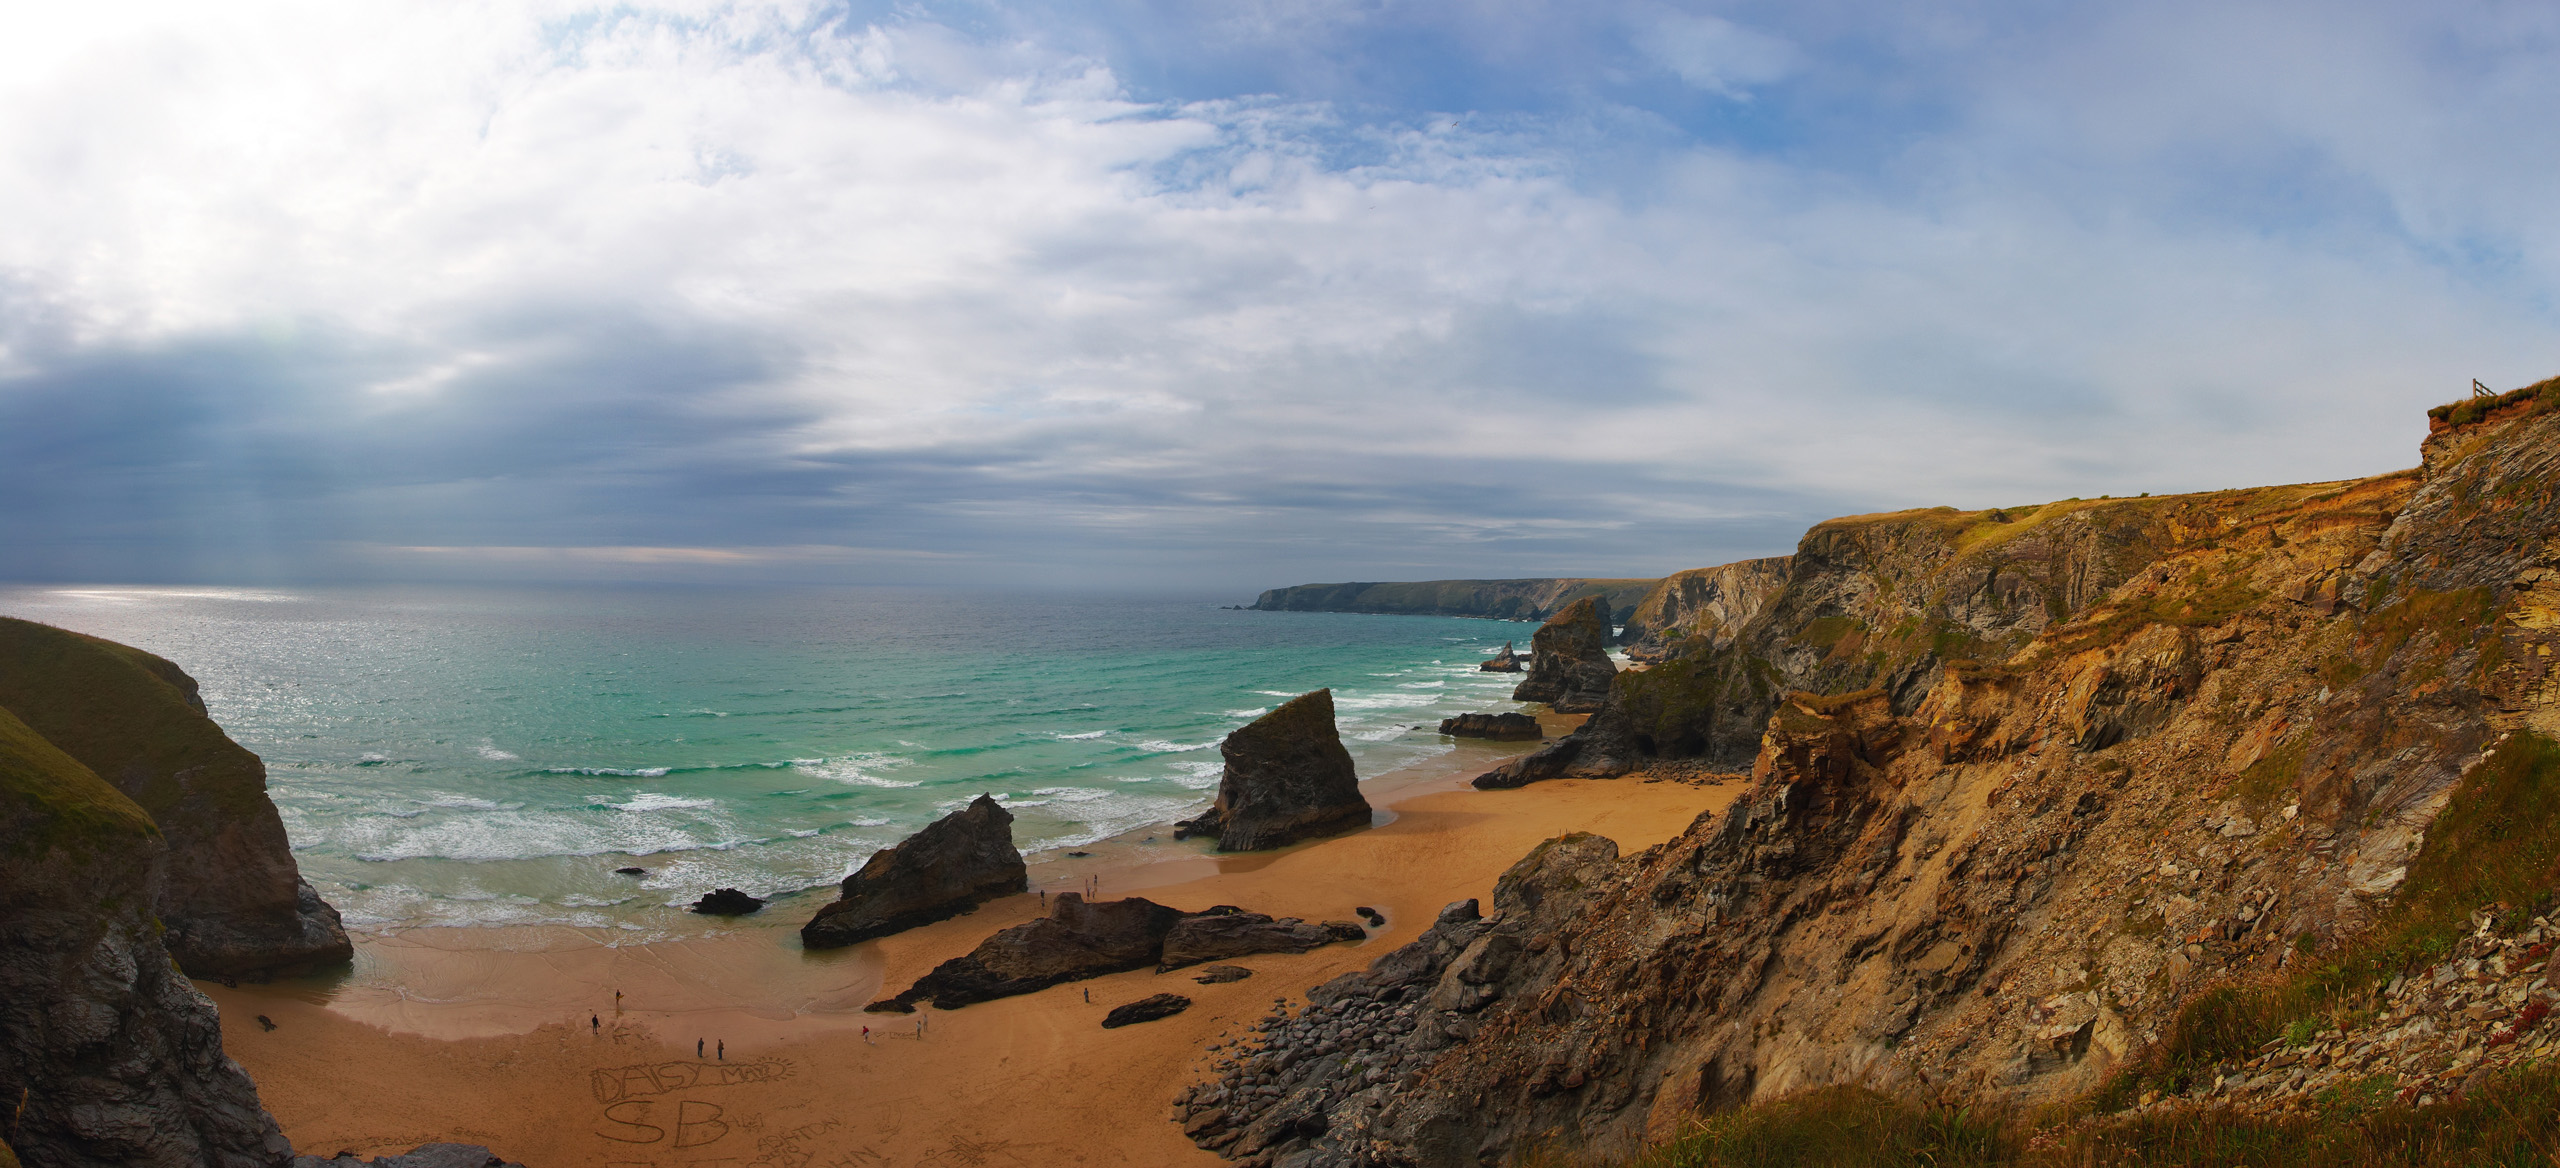 Bedruthan Steps pano from the cliff top, with a storm brewing at sea